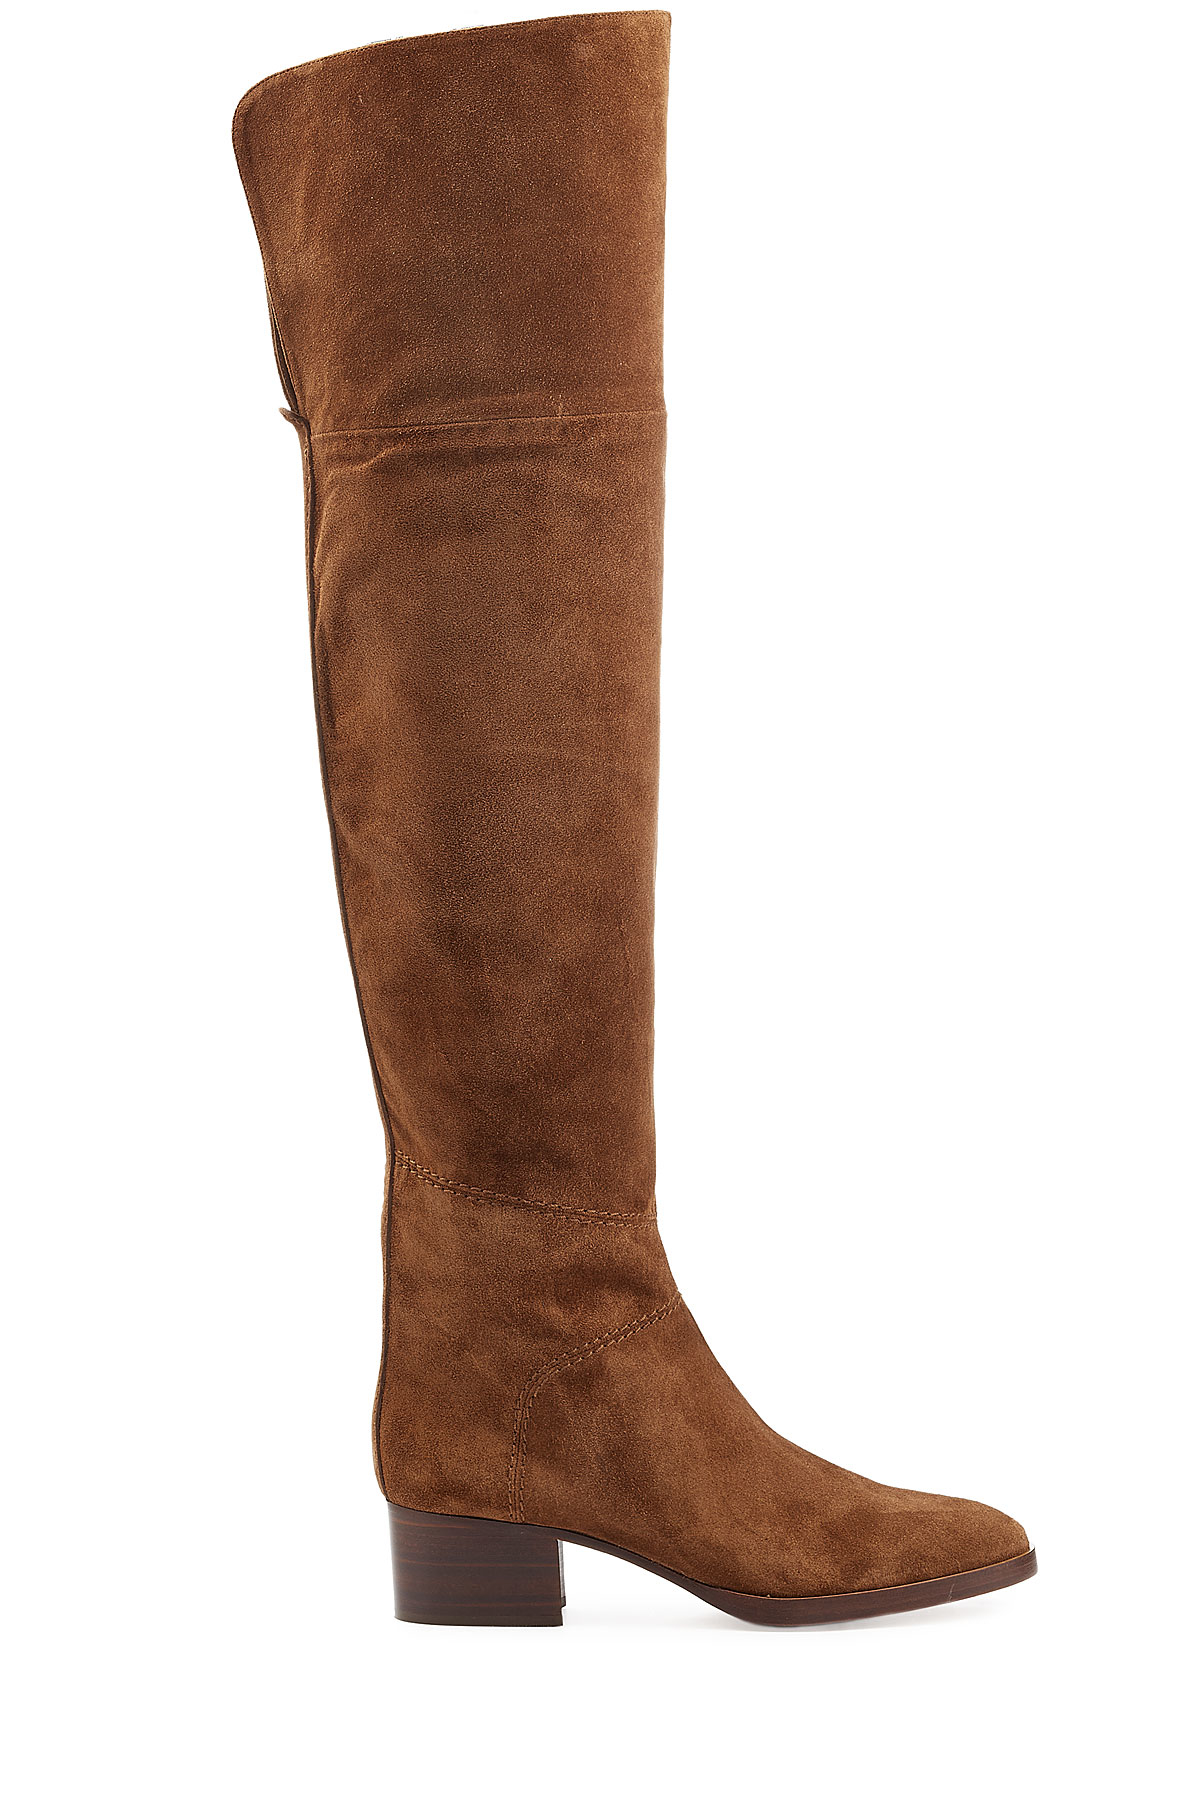 Chlo 233 Chlo 233 Over The Knee Suede Boots Camel In Brown Lyst